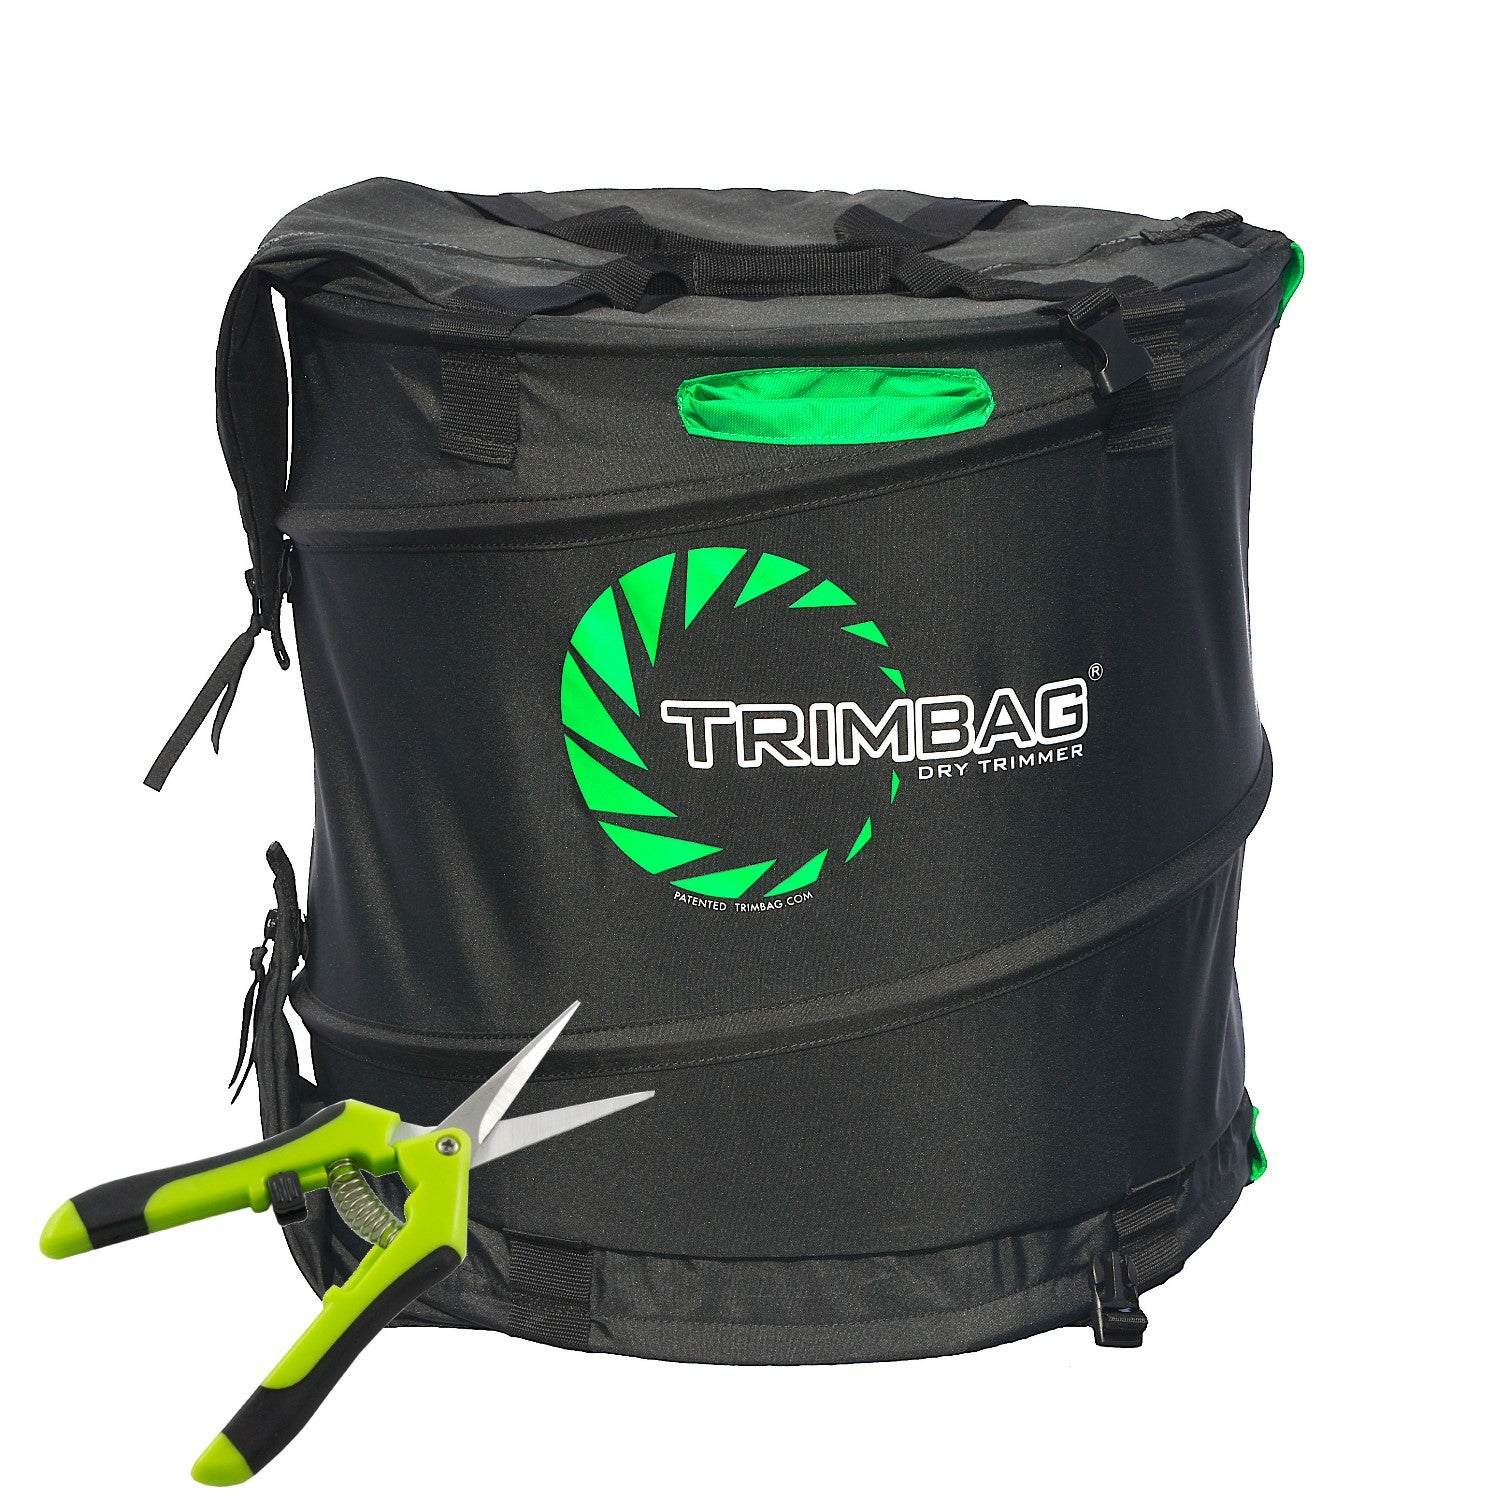 TRIMBAG Bud Leaf Trimmer Dry Pruner Spin Pro Quick Harvesting Trim Bag Hydroponics